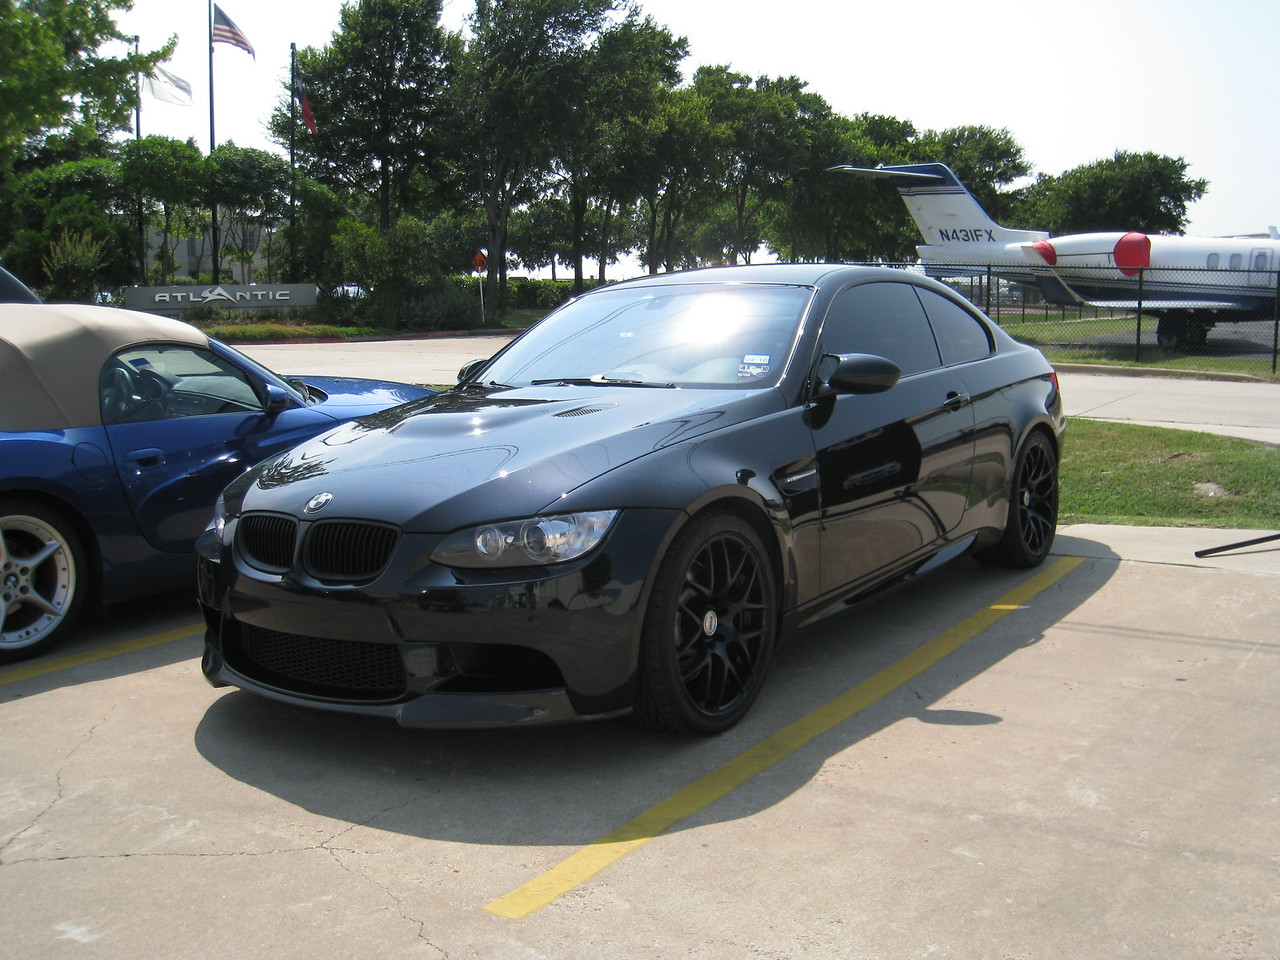 Random attendee's blacked out E92 M3. Menacing.